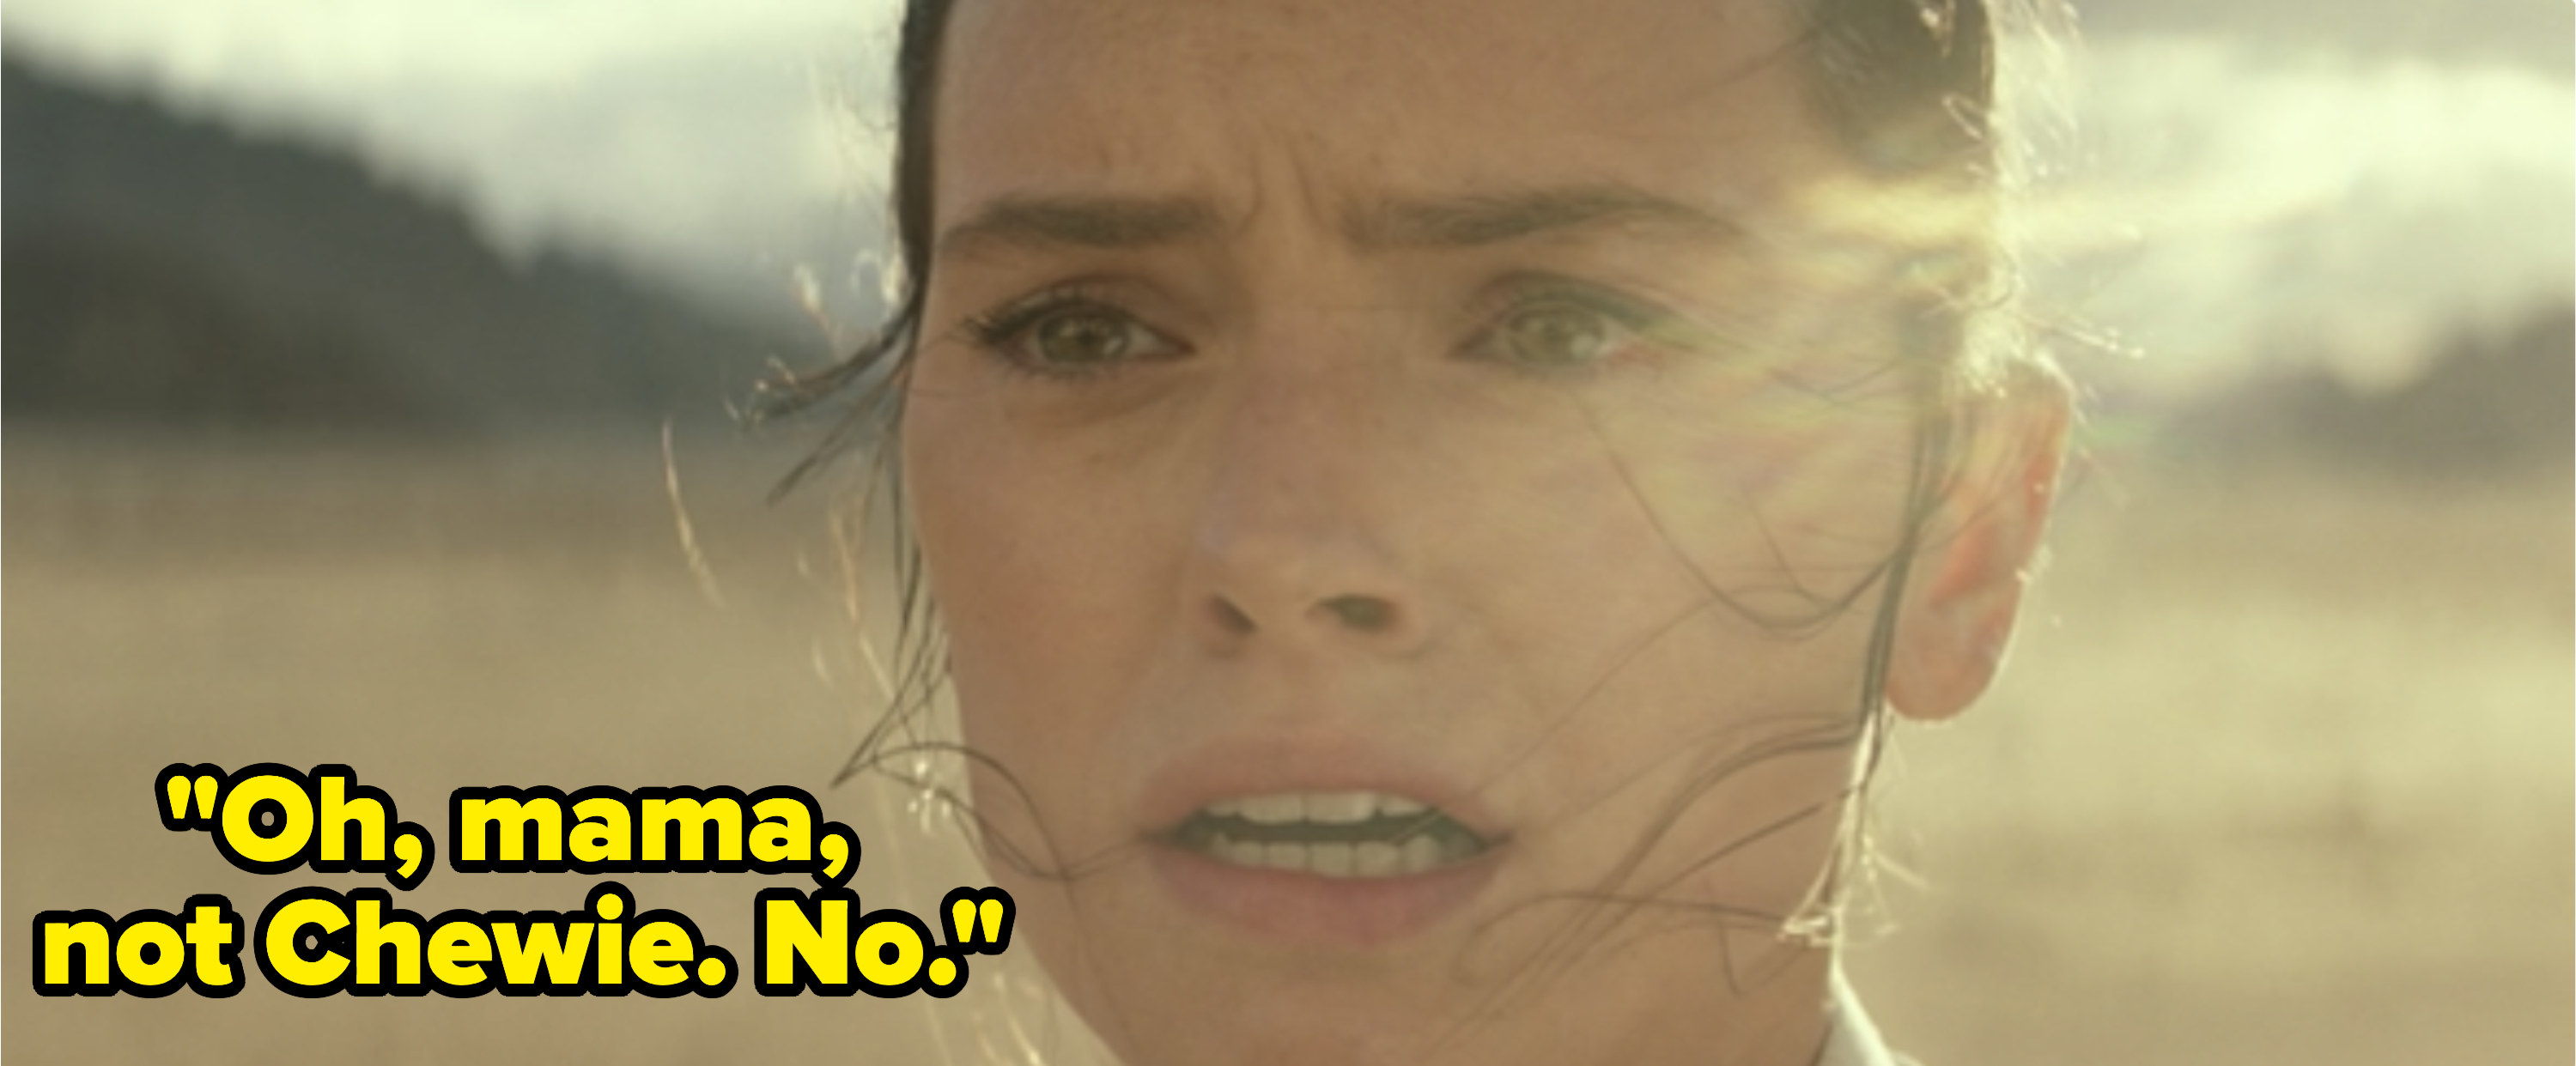 Rey thinks she blew up Chewbacca's ship